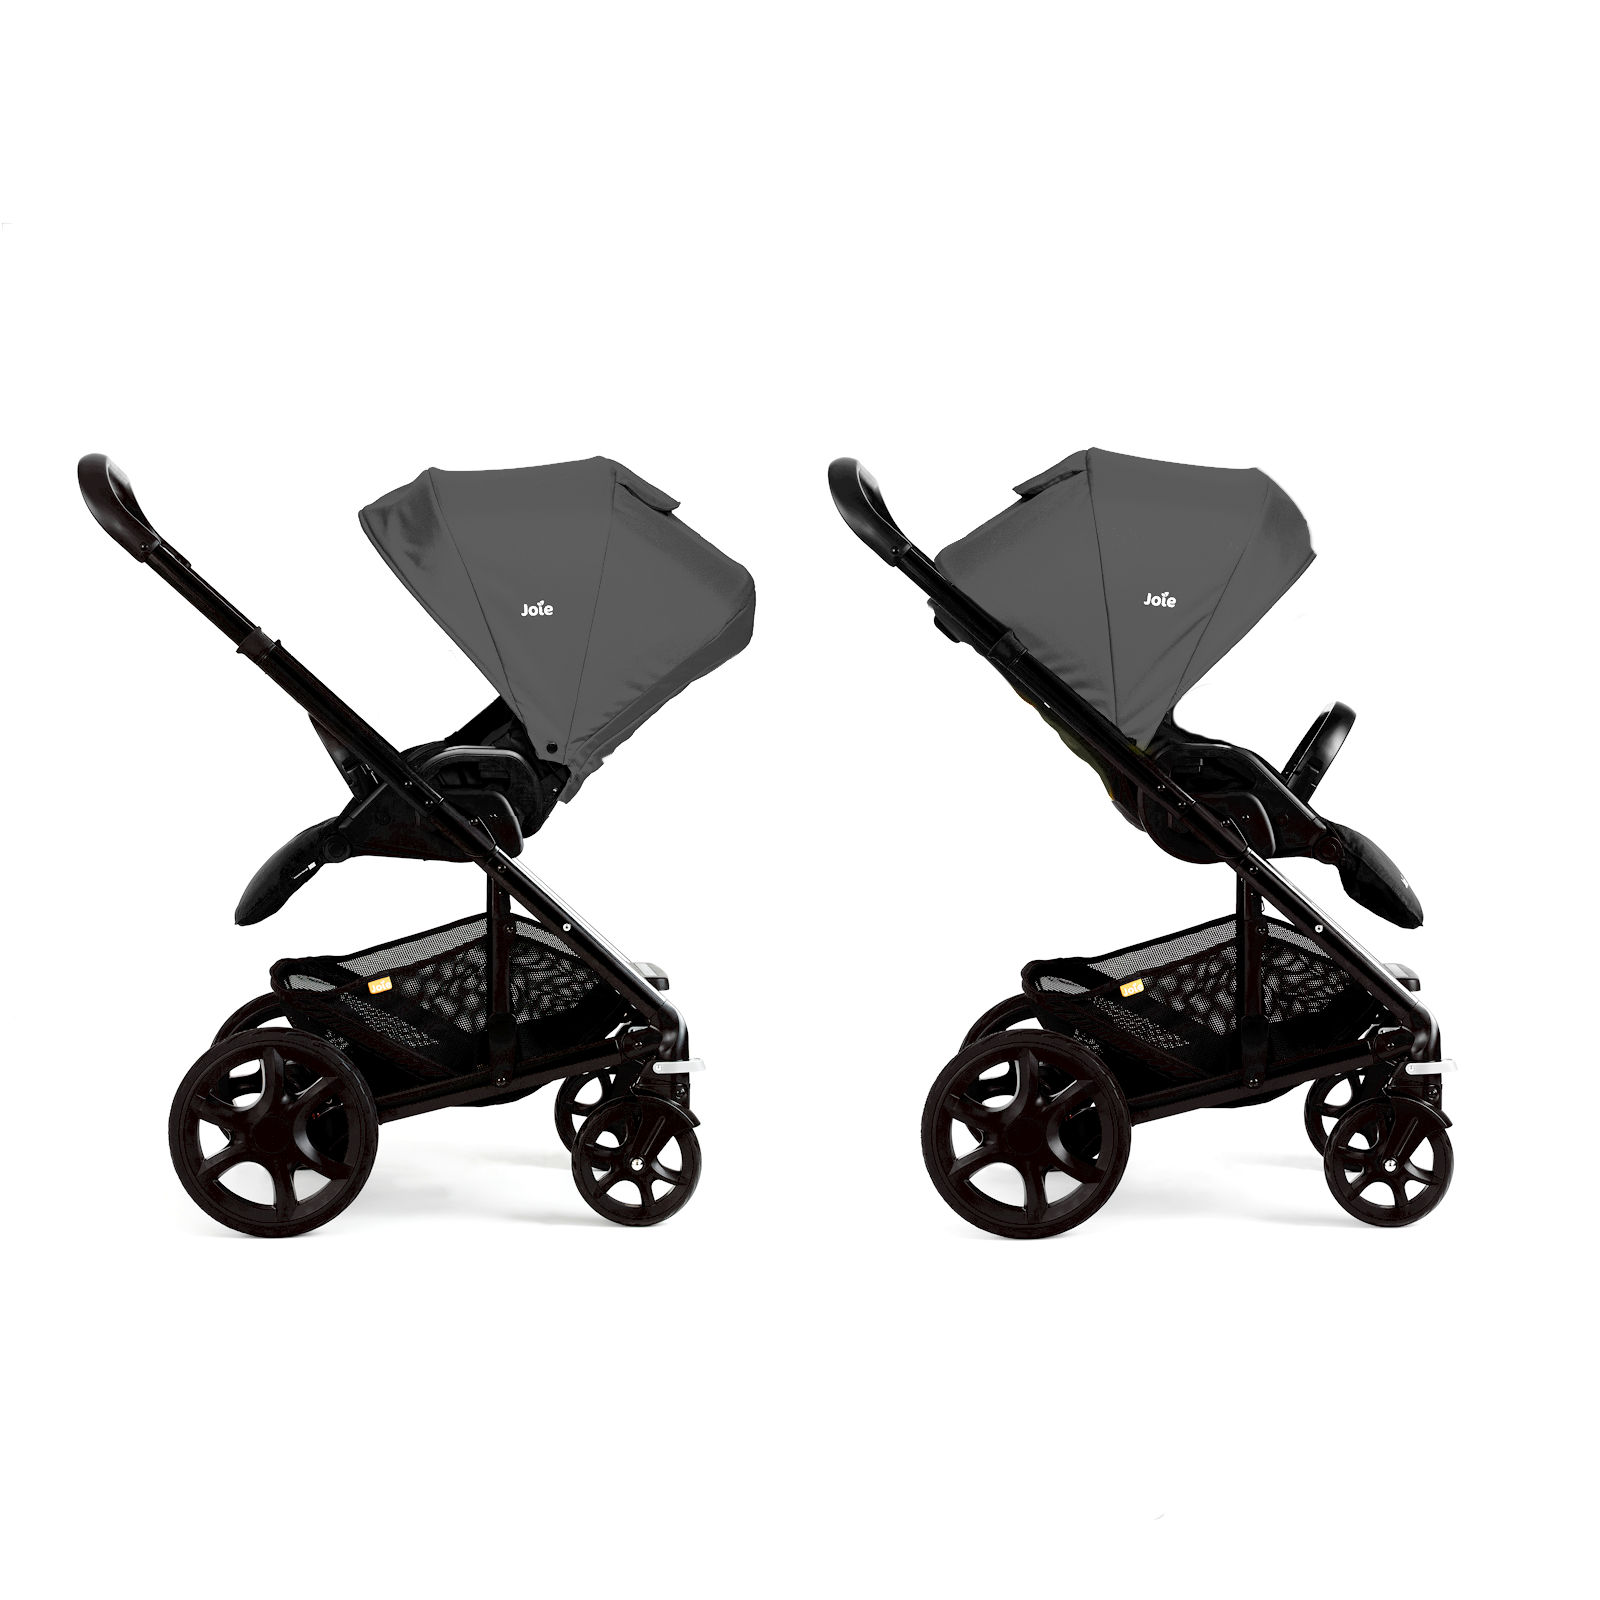 Joie Buggy Chrome Test Joie Chrome Dlx I Gemm Travel System Carrycot Inc Footmuff Pavement